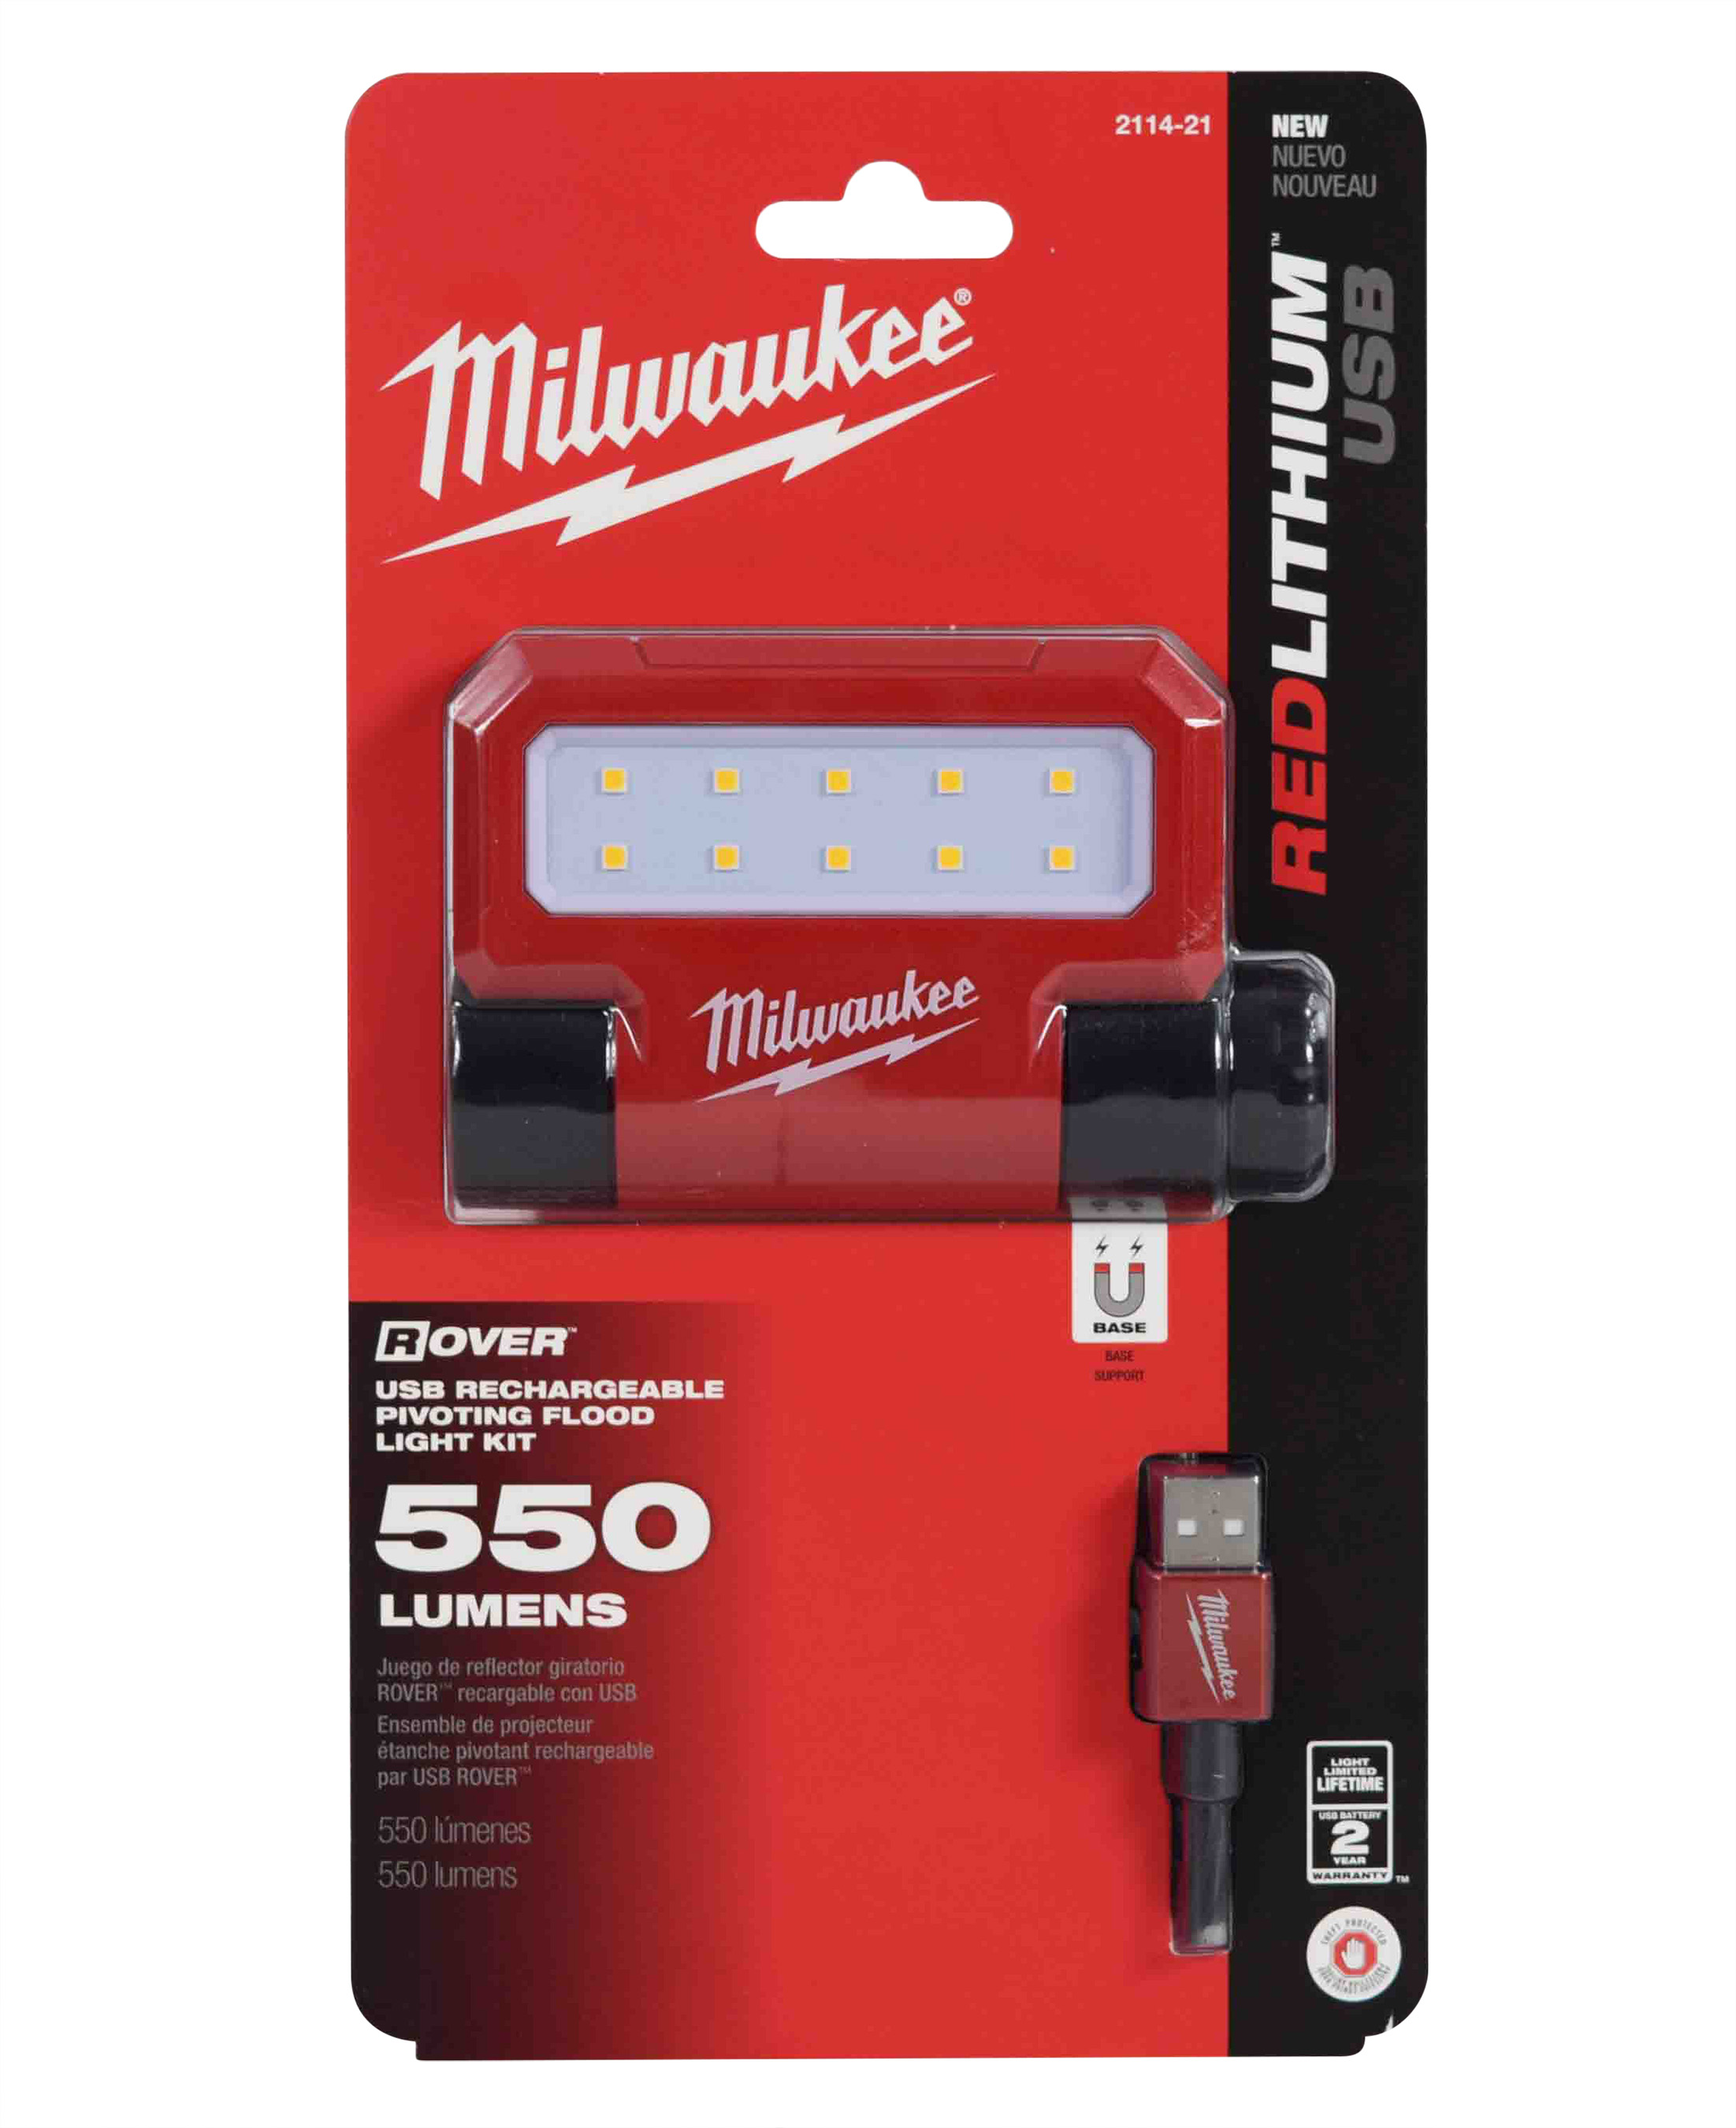 Milwaukee-2114-21-USB-Rechargeable-Rover-Pivoting-Flood-Light-Kit-image-1